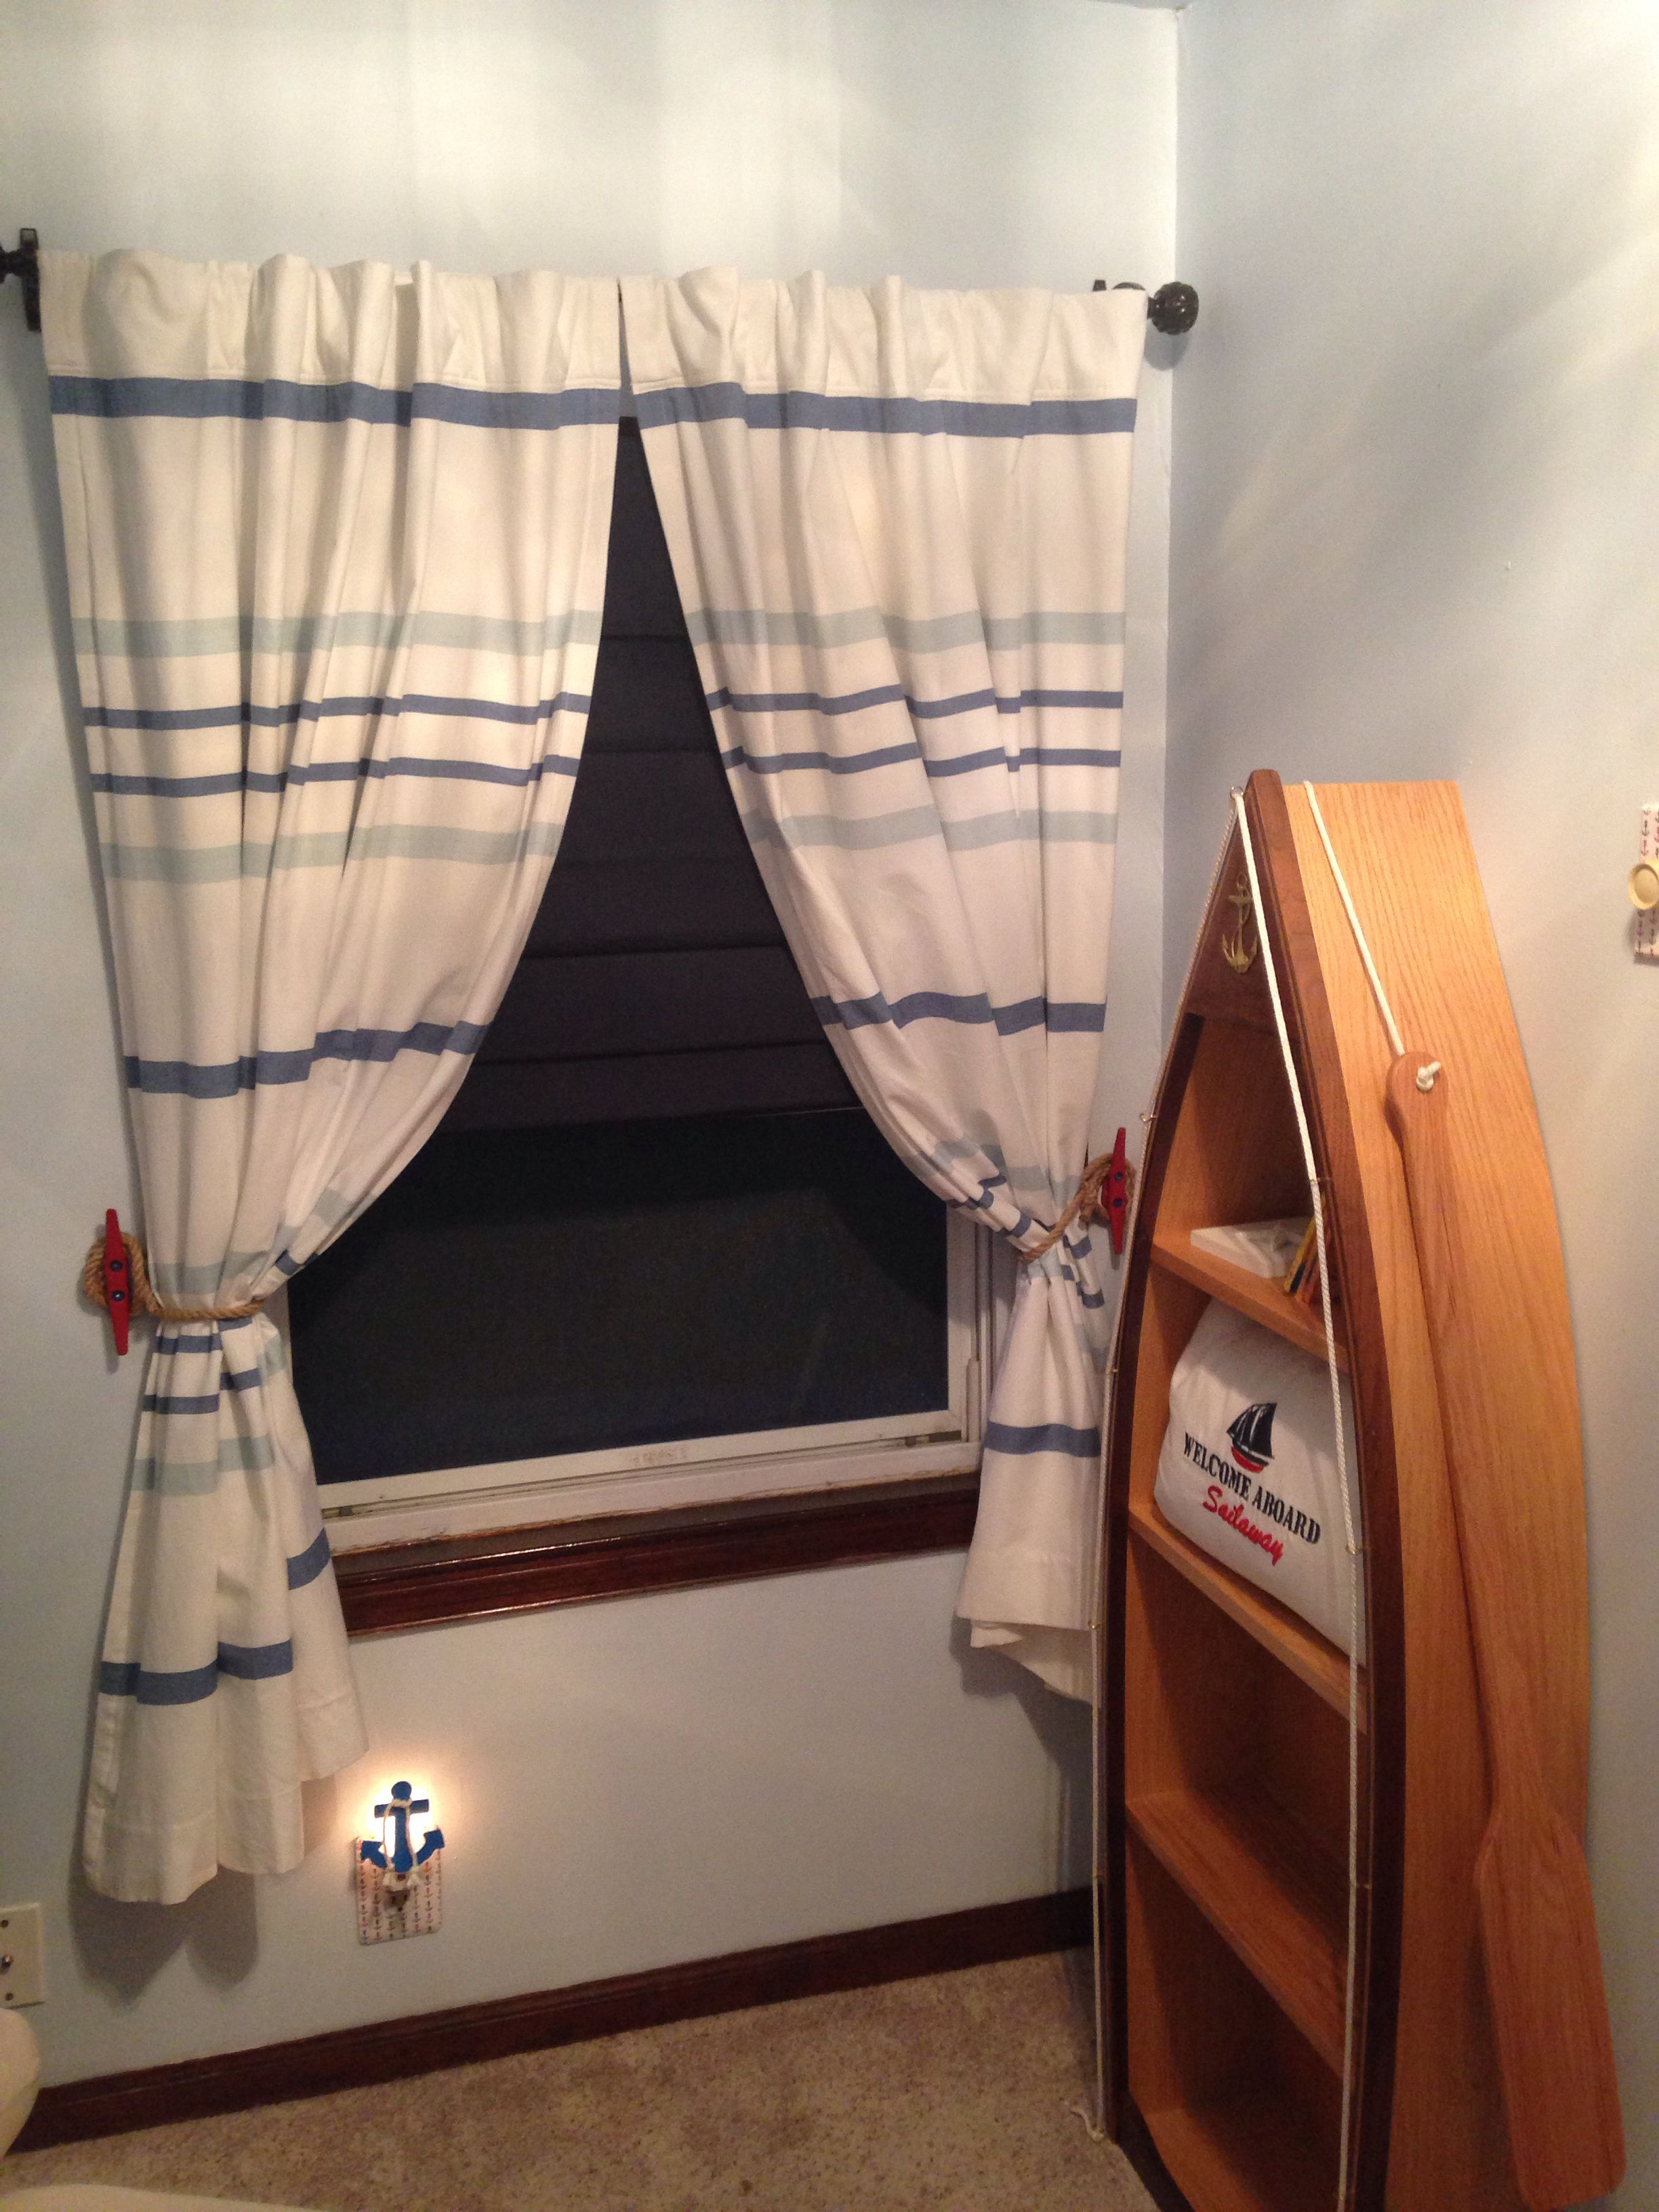 My Nautical Nursery Curtains From Land Of Nod Red Boat Cleat